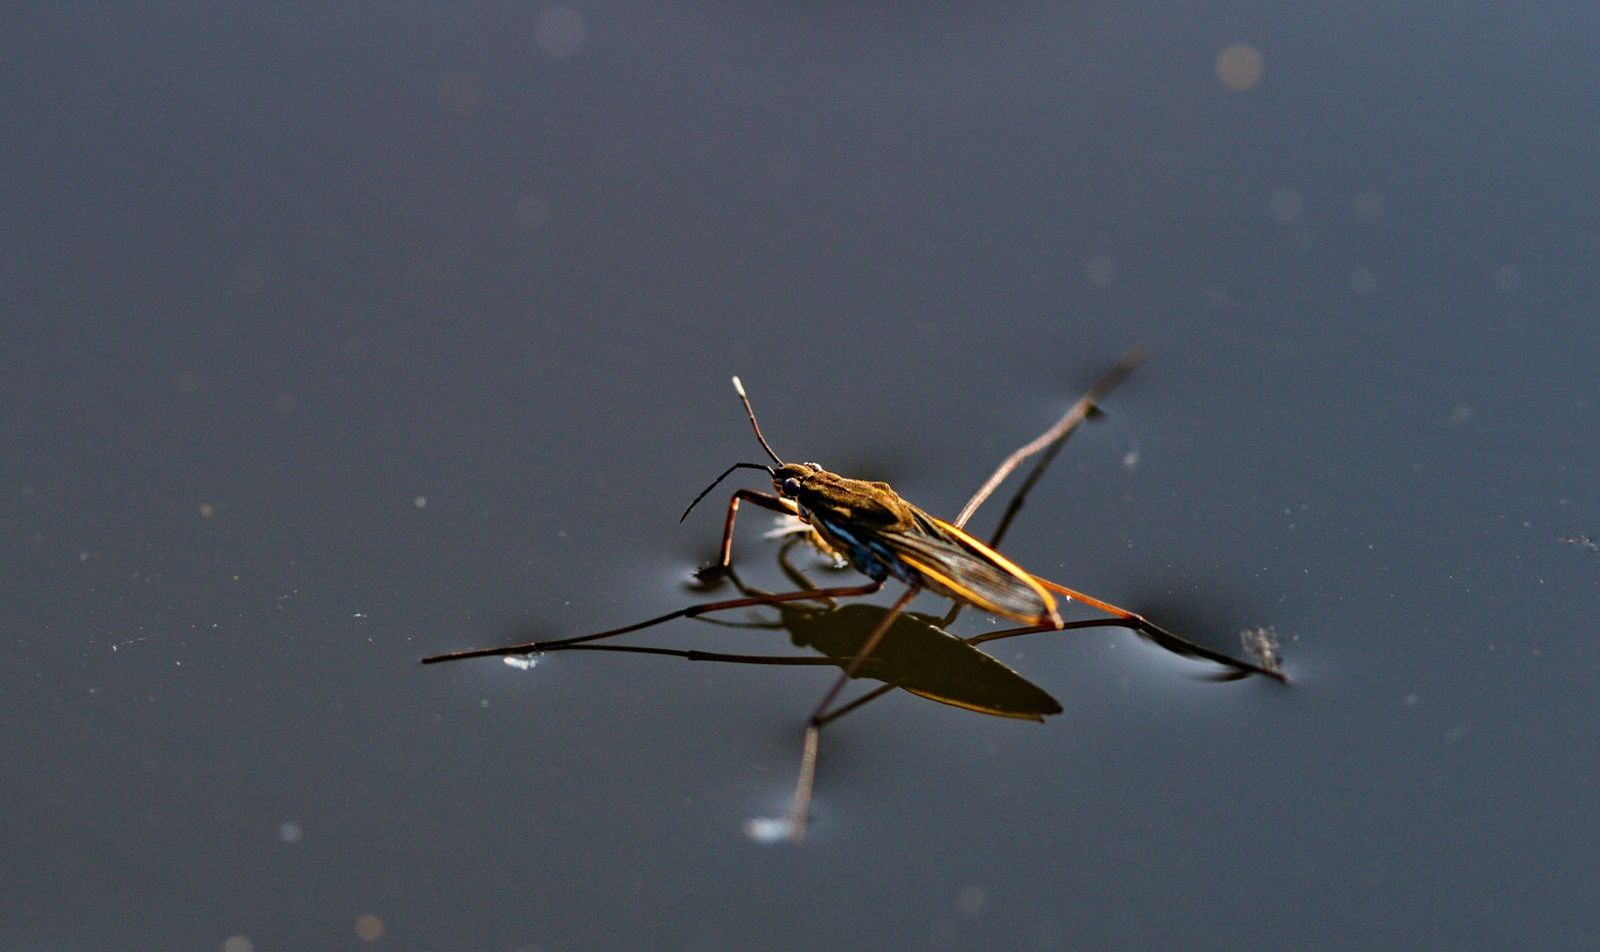 Water strider on the surface of water